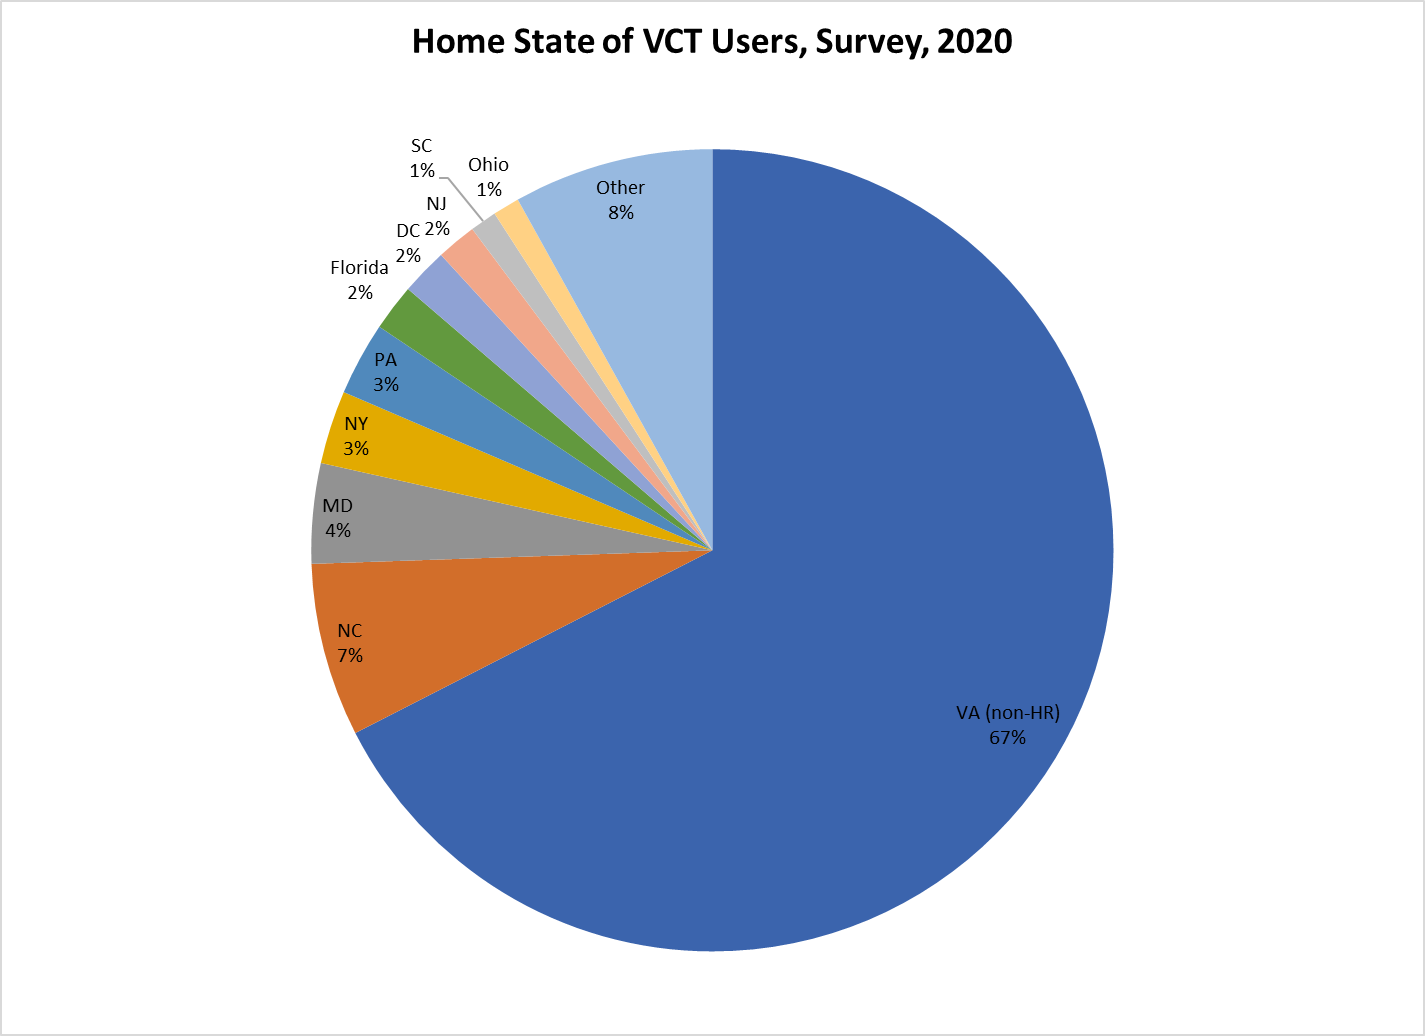 Pie chart indicating the homes state of VCT user per 2020 Survey